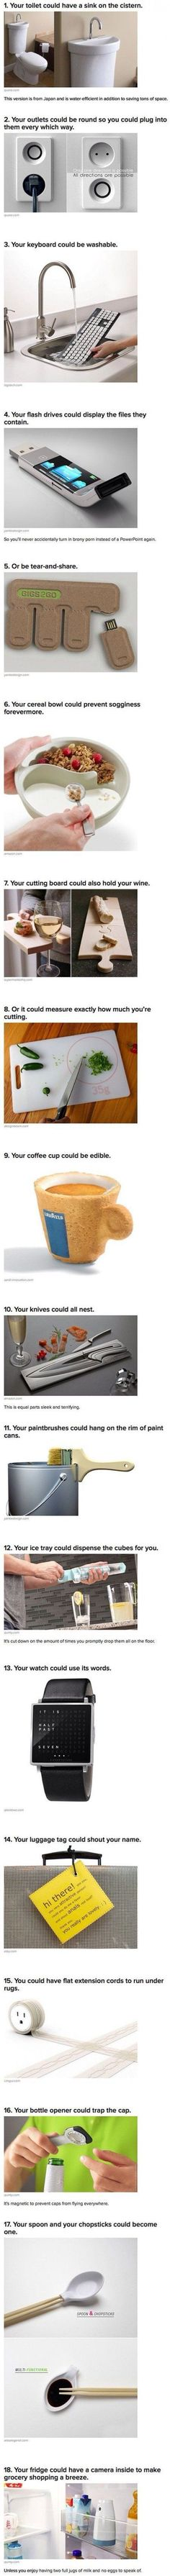 New And Incredibly Brilliant Inventions That We Should - 20 strange awesome inventions need life